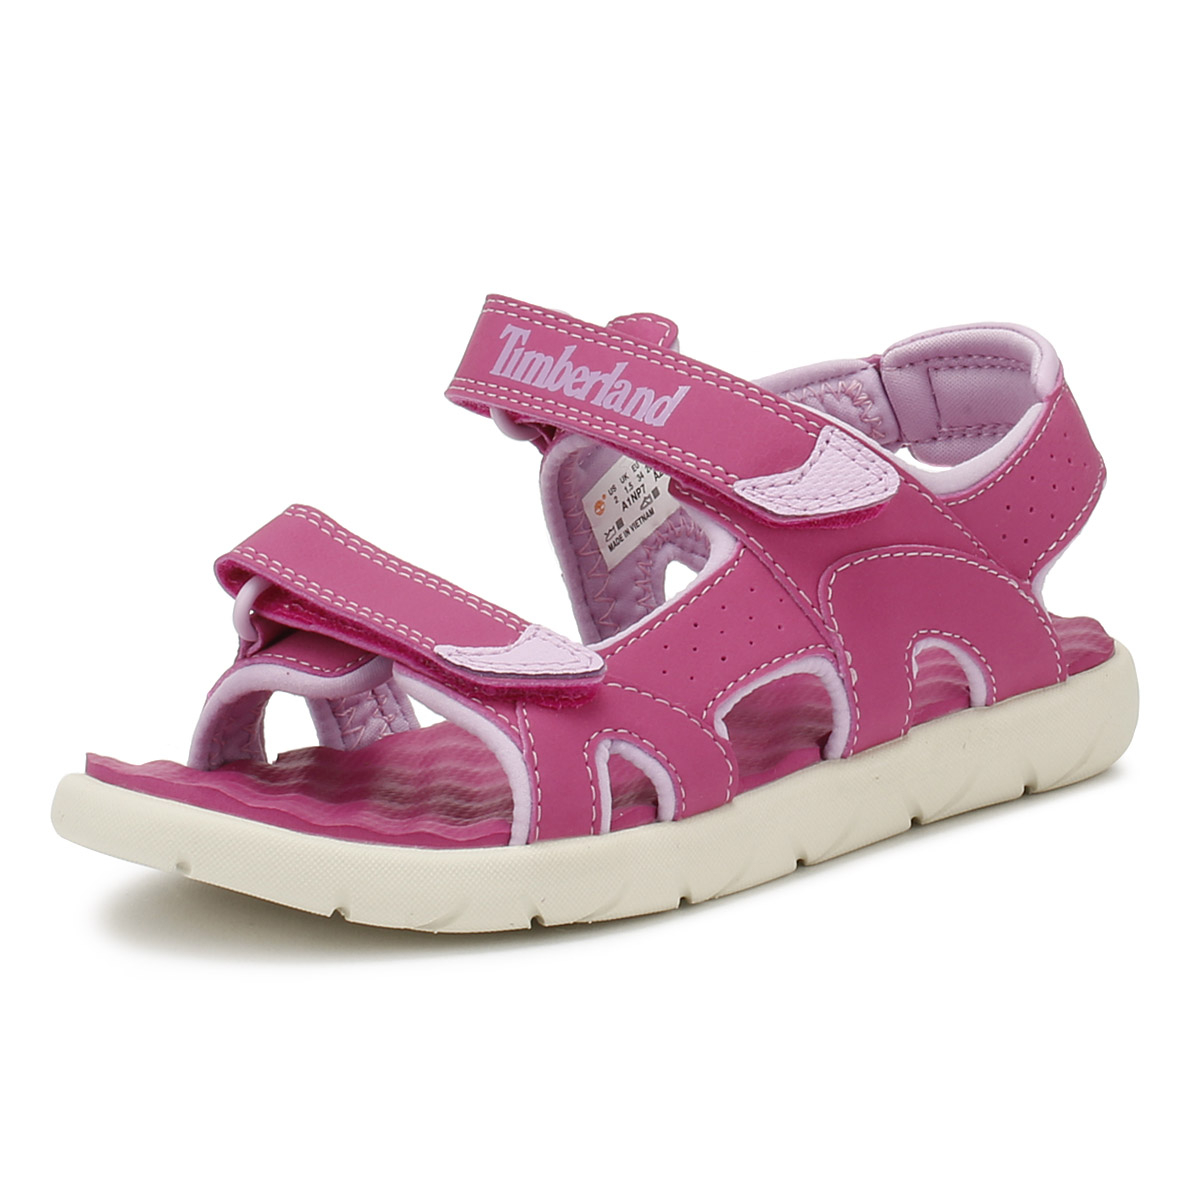 6f75cdc8eb1 Details about Timberland Junior Sandals Pink Perkins Row 2-Strap Kids  Summer Shoes